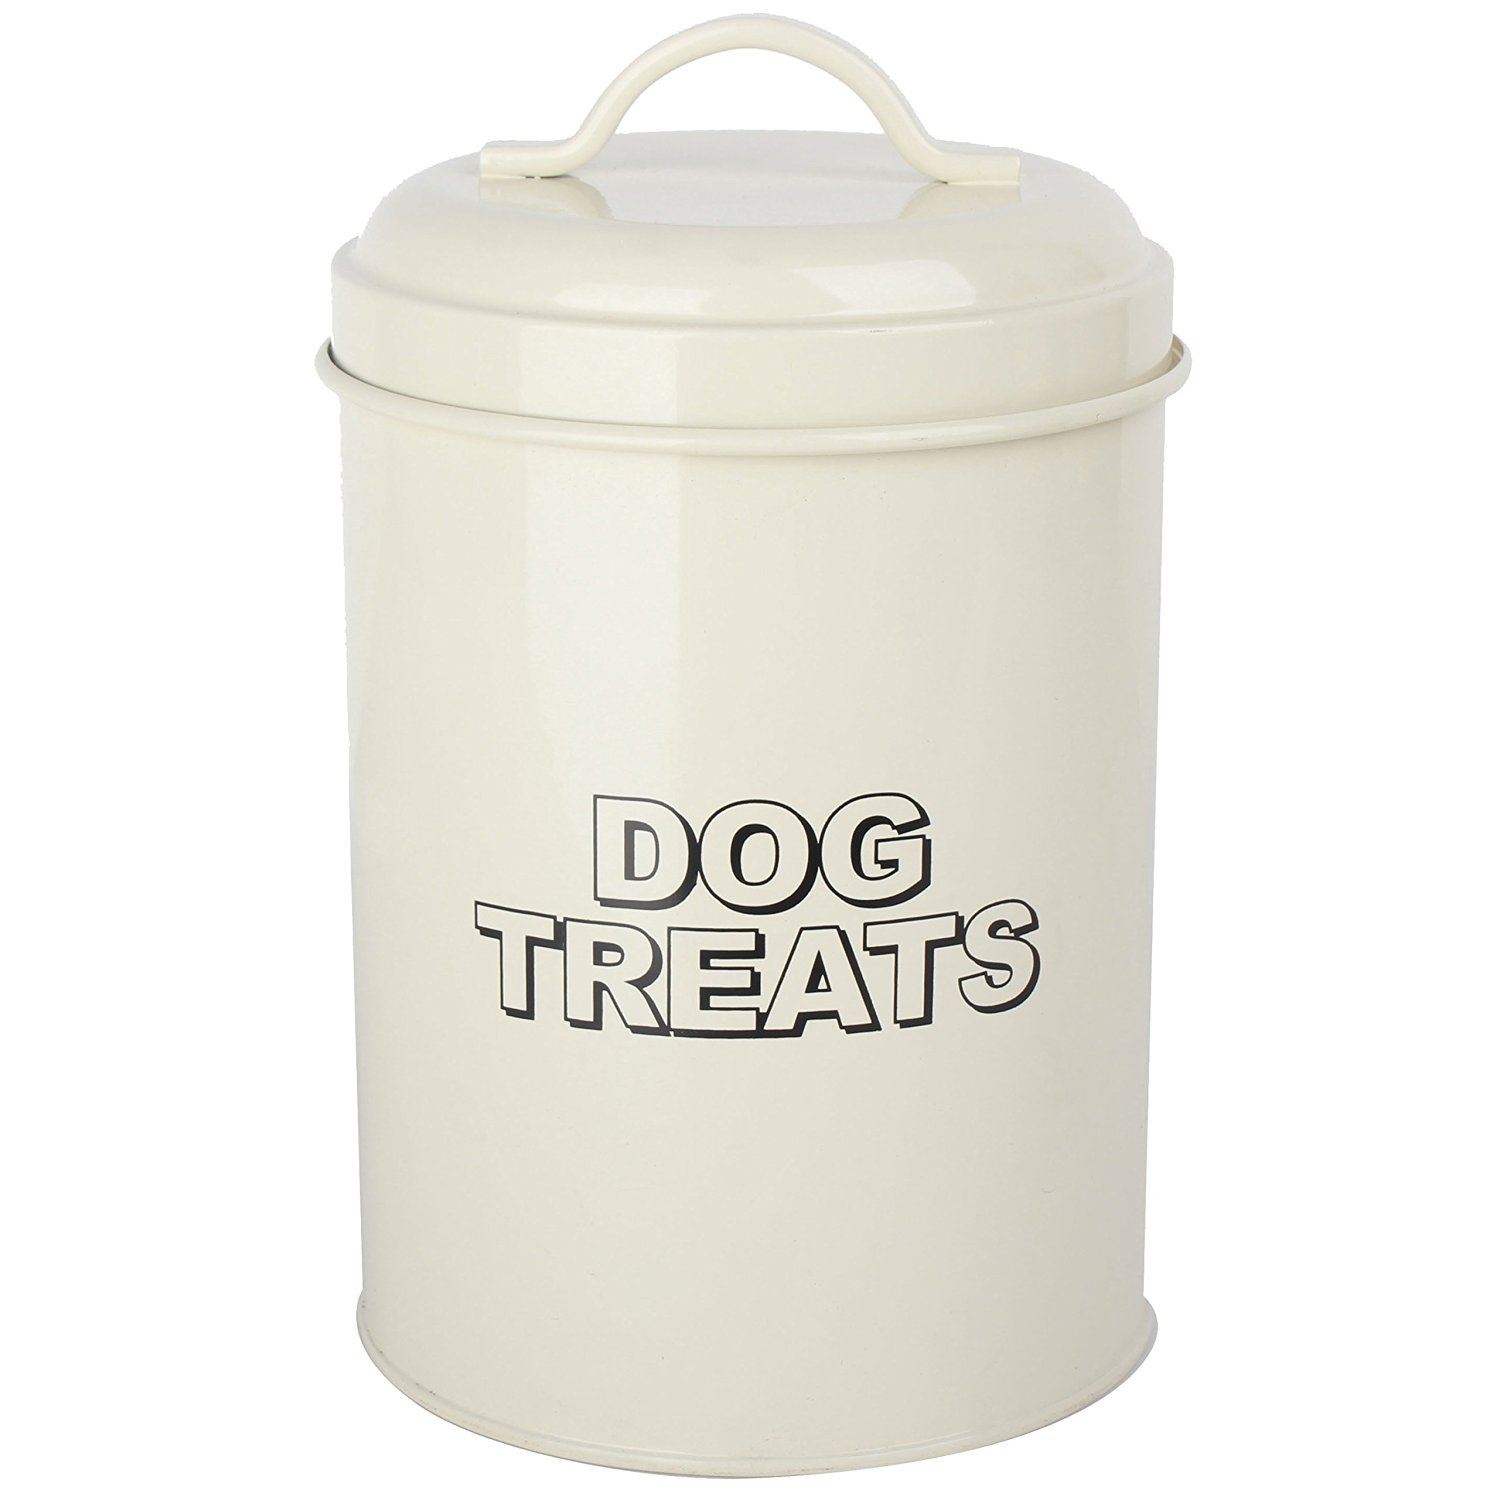 Vintage Classic Retro Dog Food Treats Storage Container